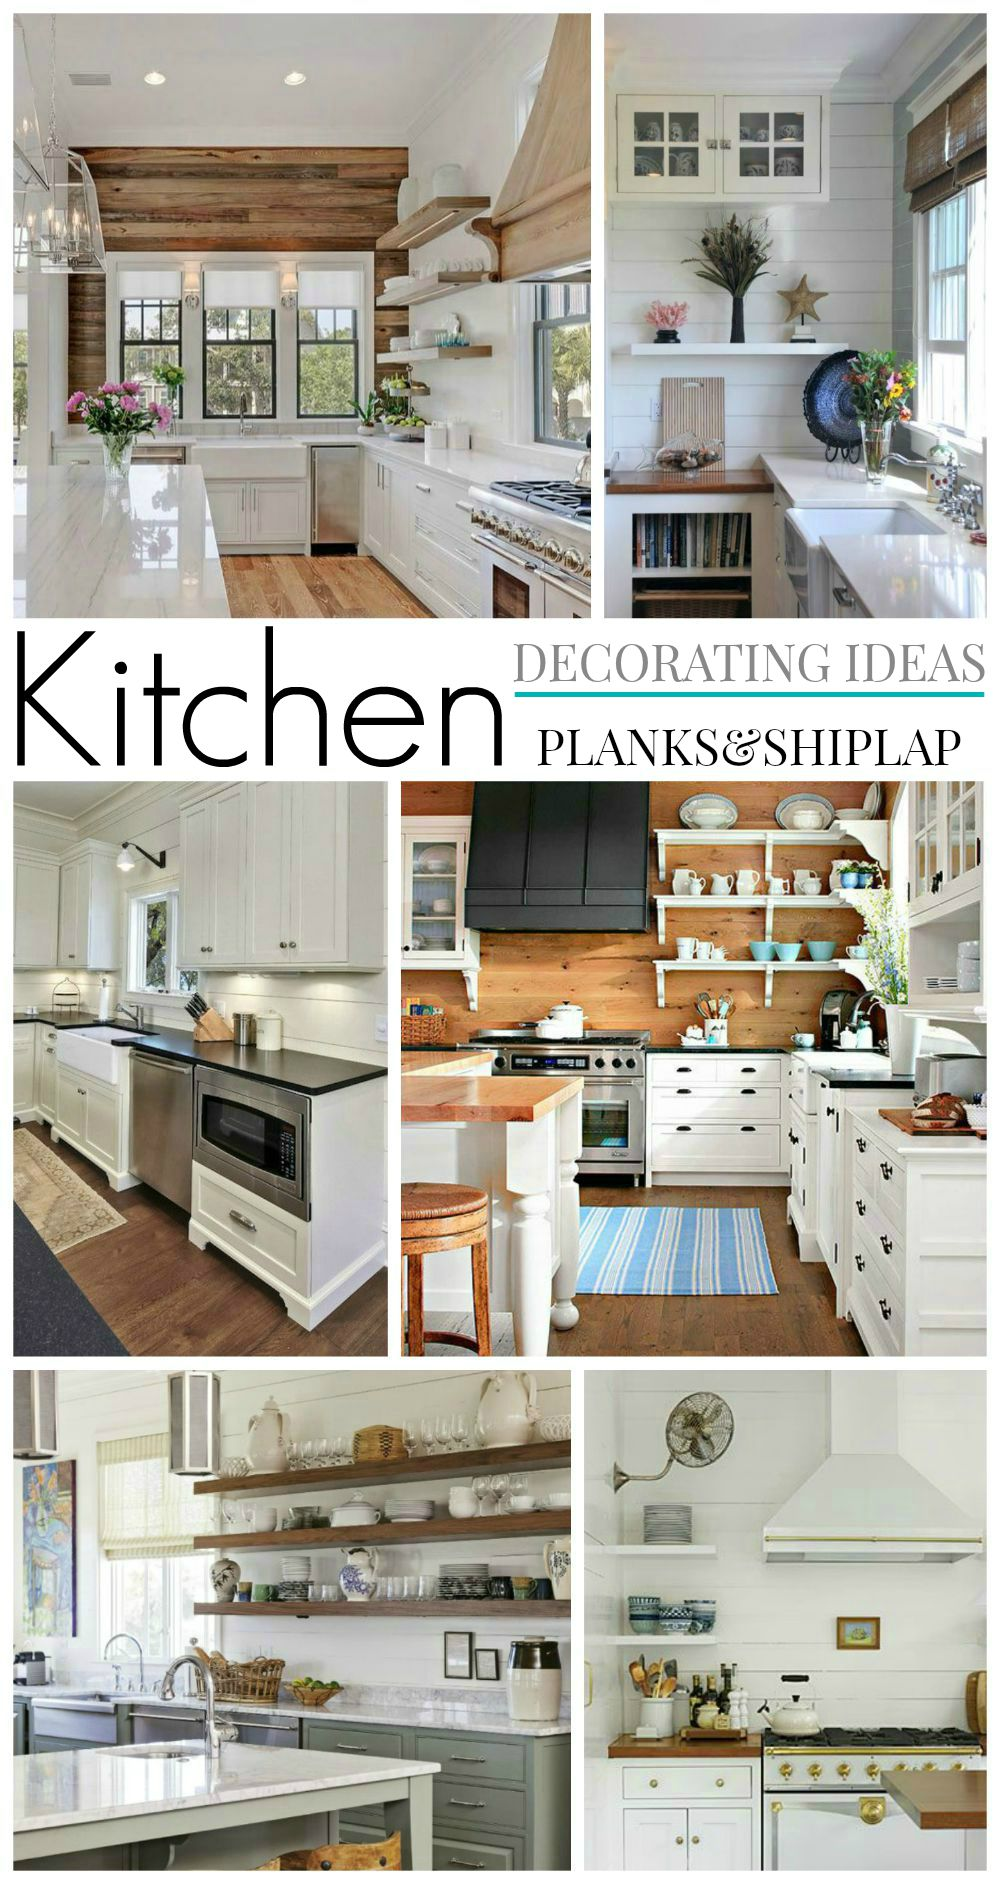 Decorating Ideas Wood Planks and Shiplap - Kitchen Plans - the little cottage foxhollowcottage.com   The Little Cottage October Update